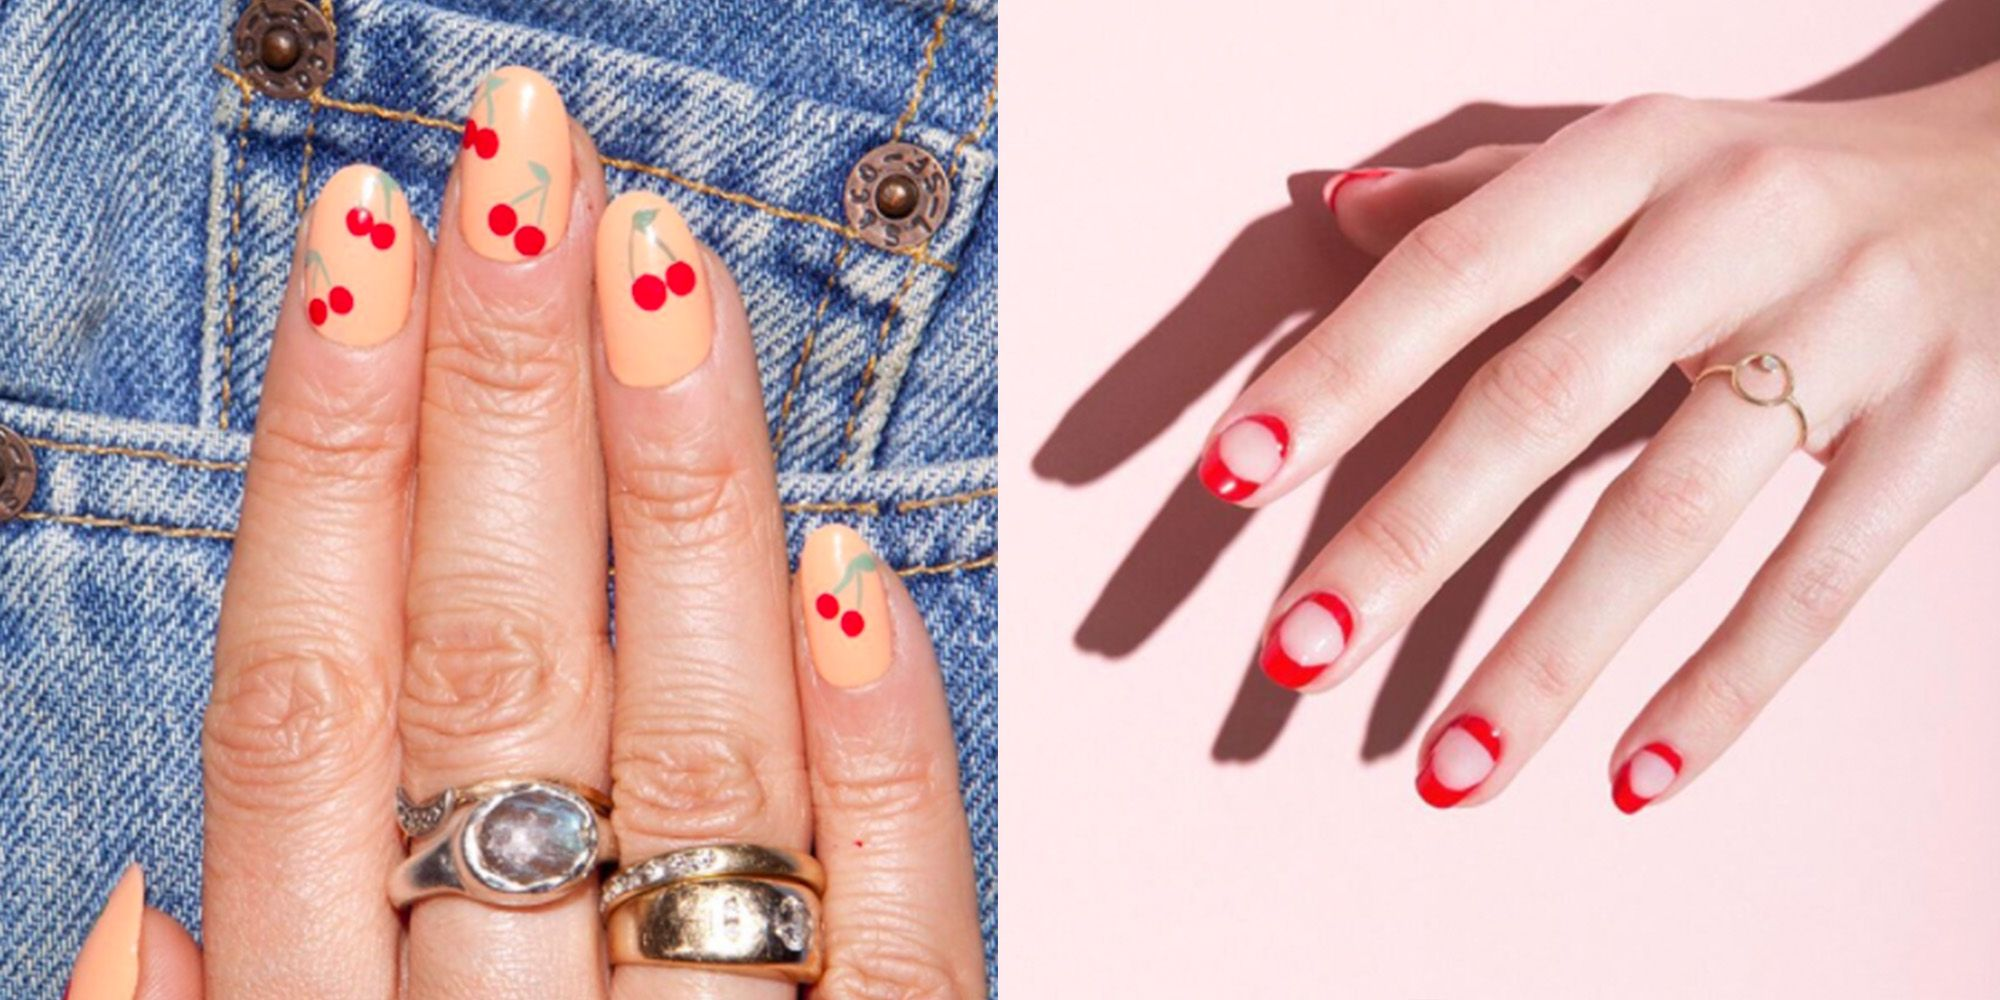 18 Instagram-Worthy Nail Art Designs to Celebrate the Fourth of July